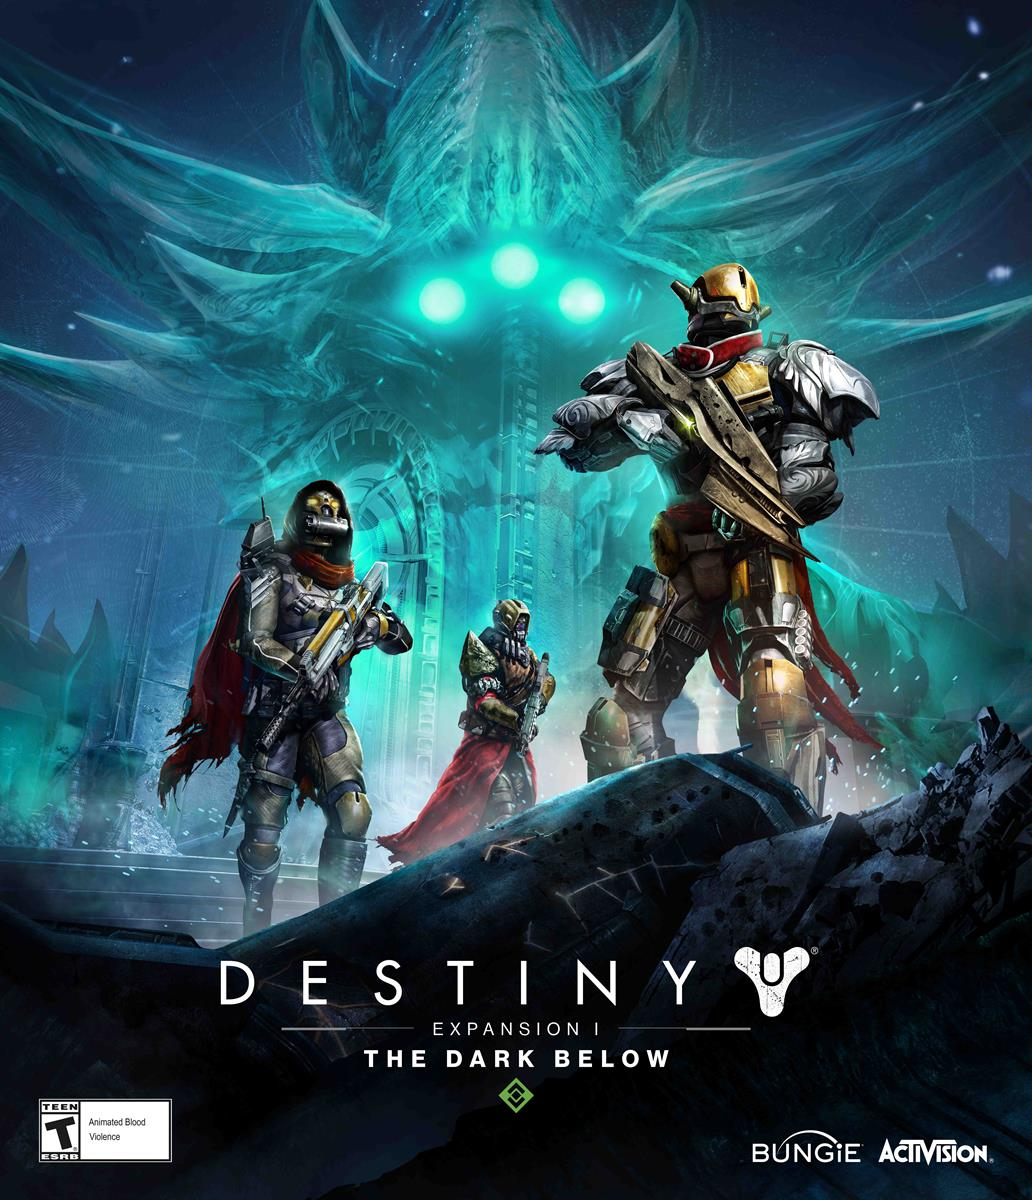 Destiny_ExpansionI_Key_Art